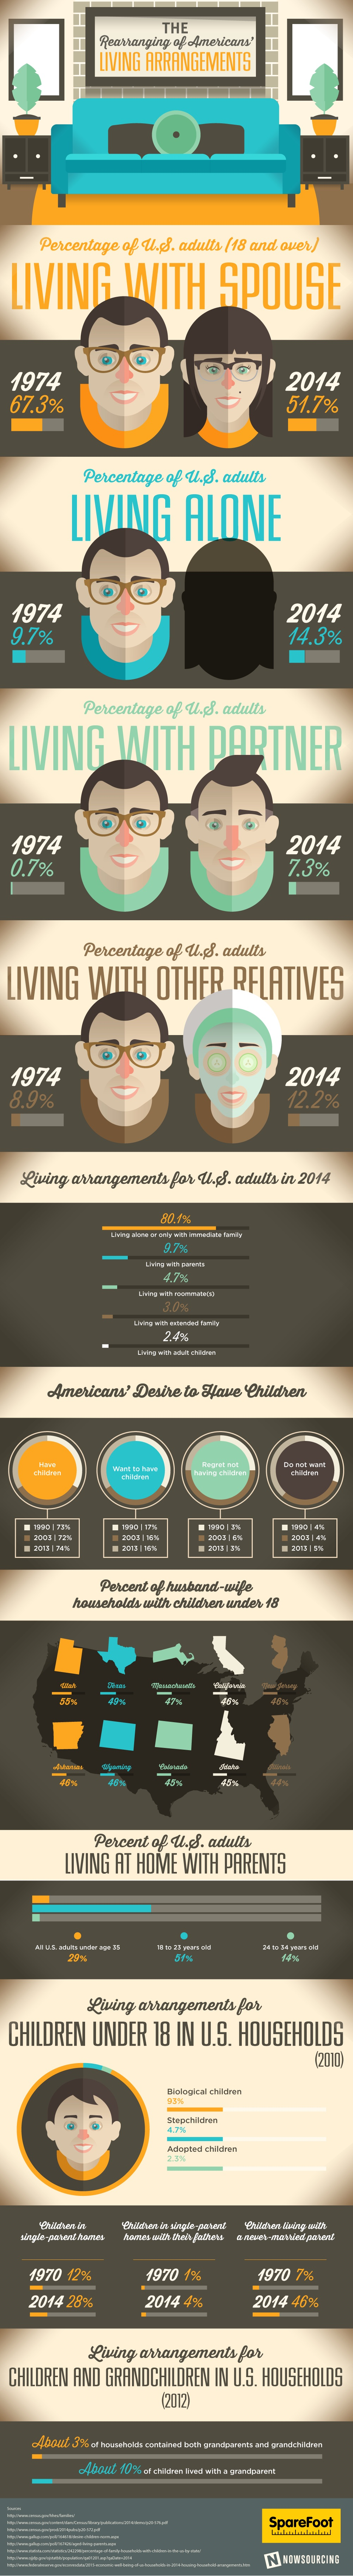 The Rearranging of Americans' Living Arrangements